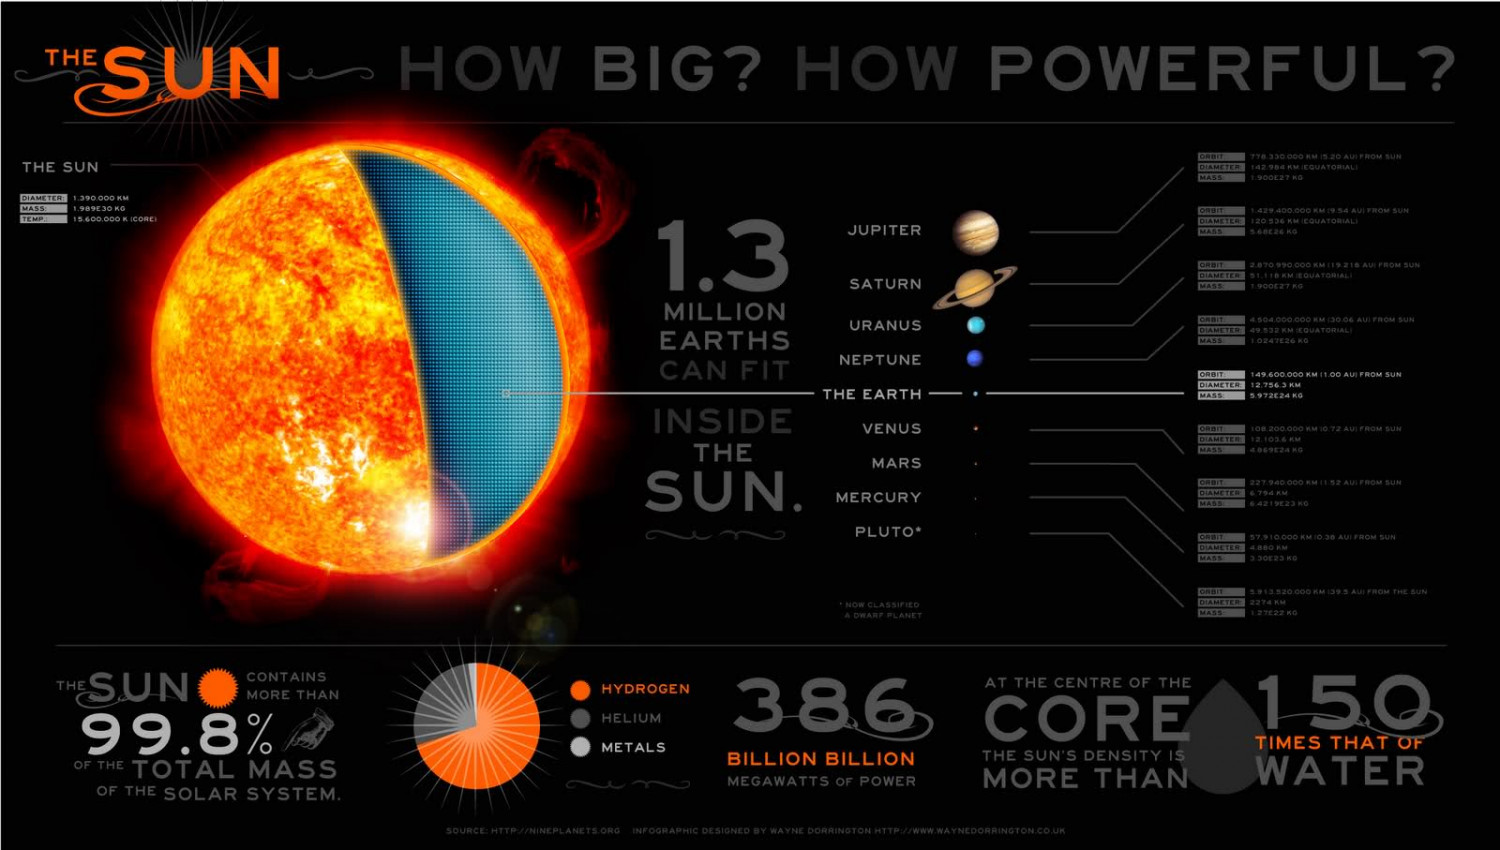 How big and powerful really is the sun? Infographic